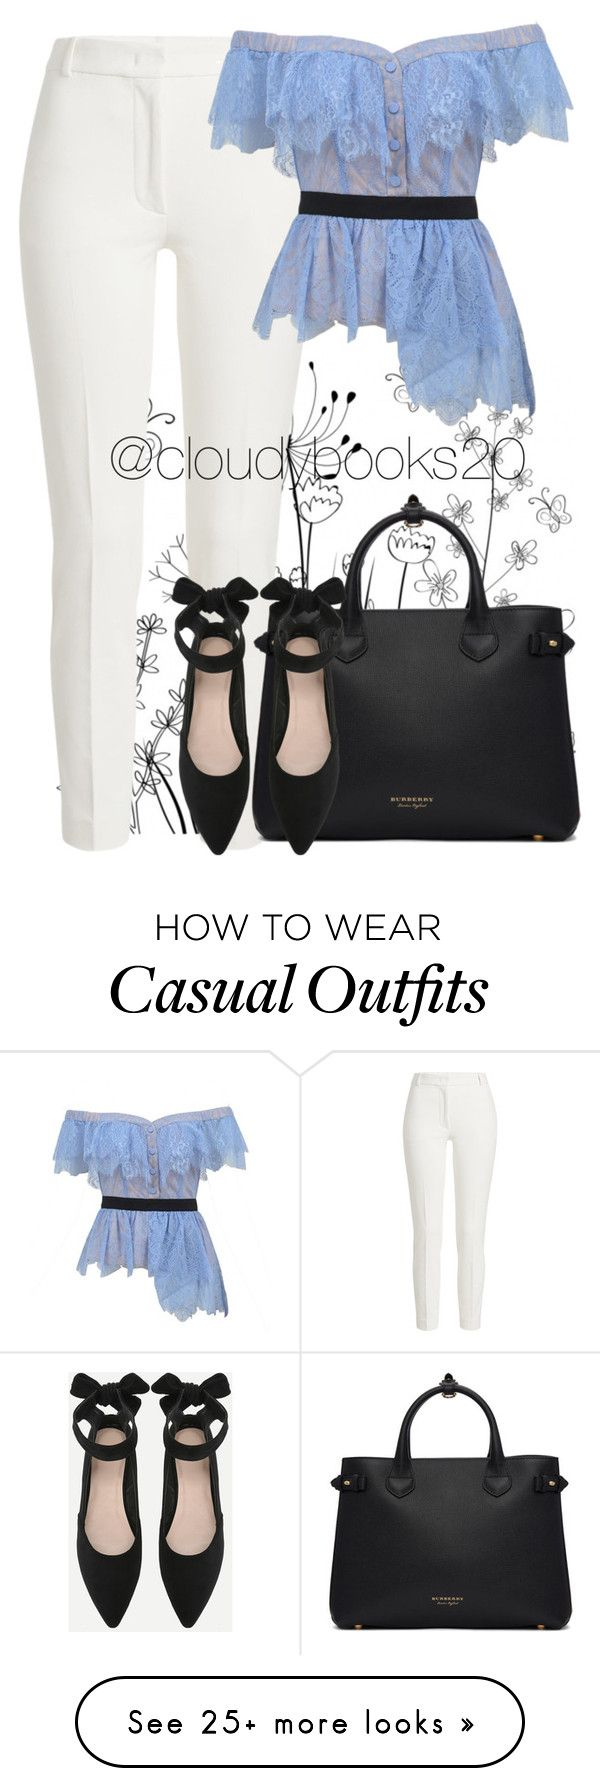 """Semi Casual Day"" by cloudybooks on Polyvore featuring Joseph, self-portrait and Burberry"